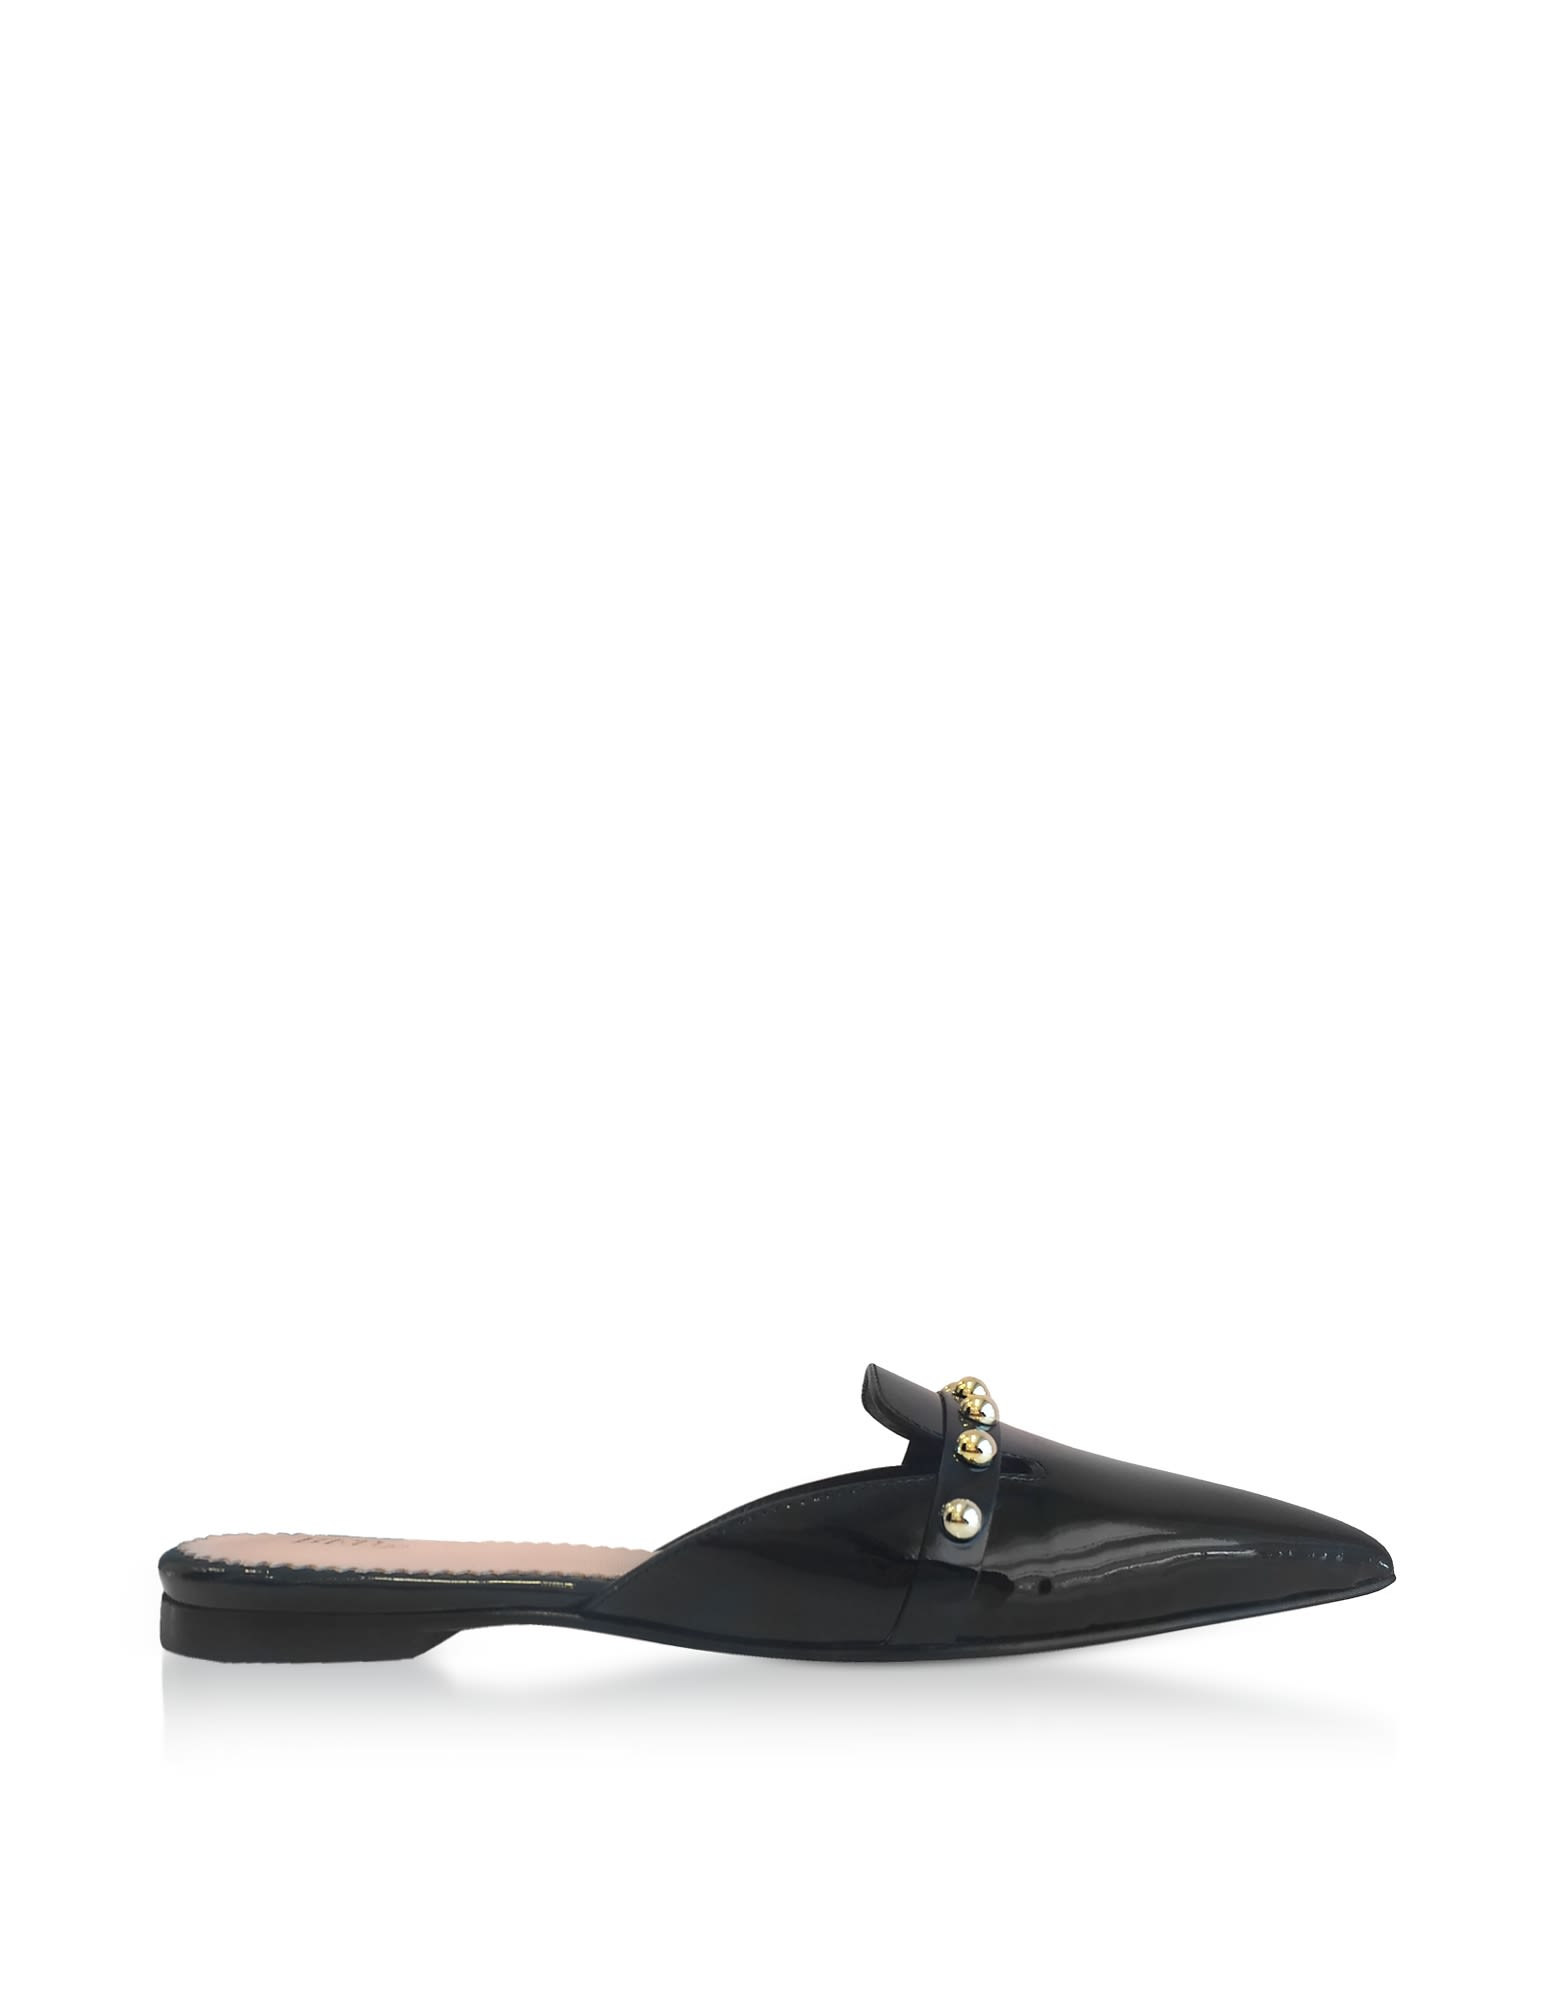 Red Valentino Black Patent Leather Pointy Mules